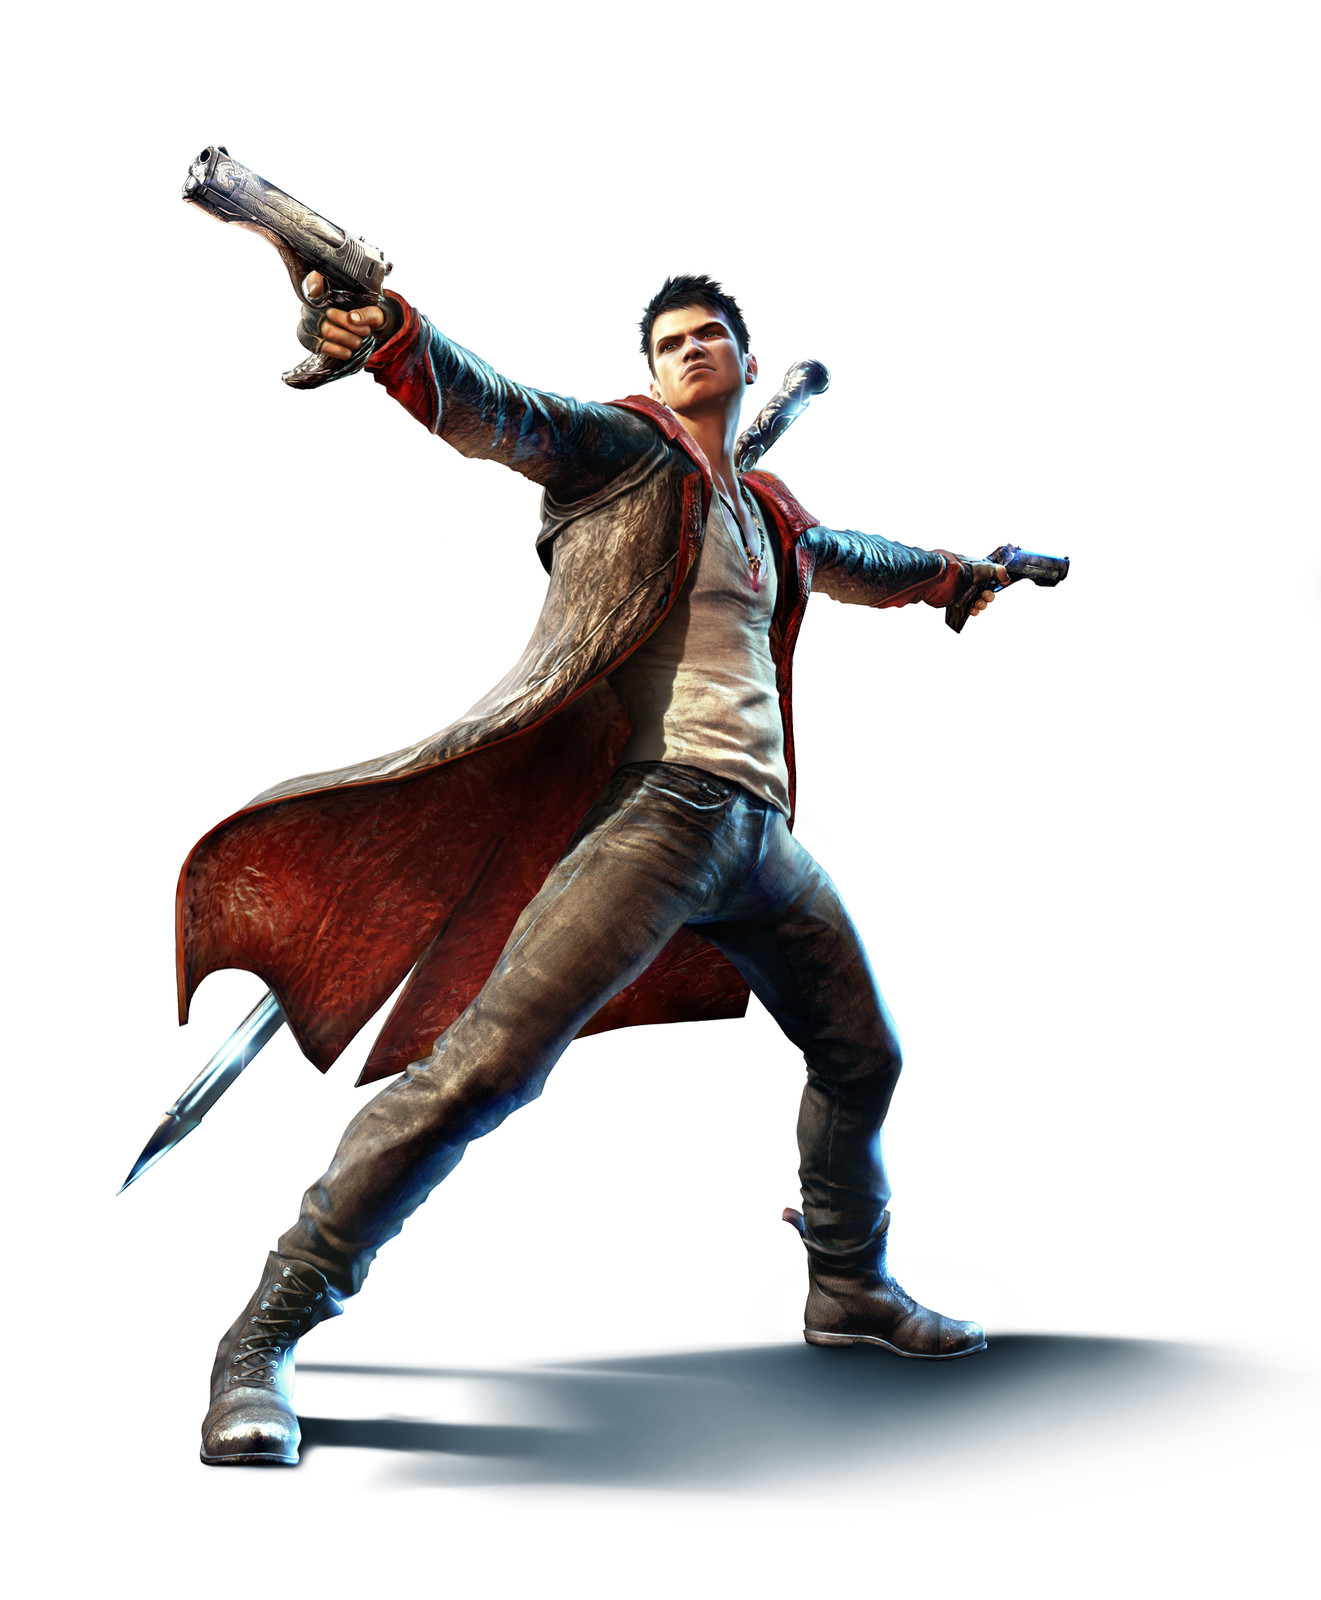 DmC: Dante with Ivory and Ebony - Marketing Render